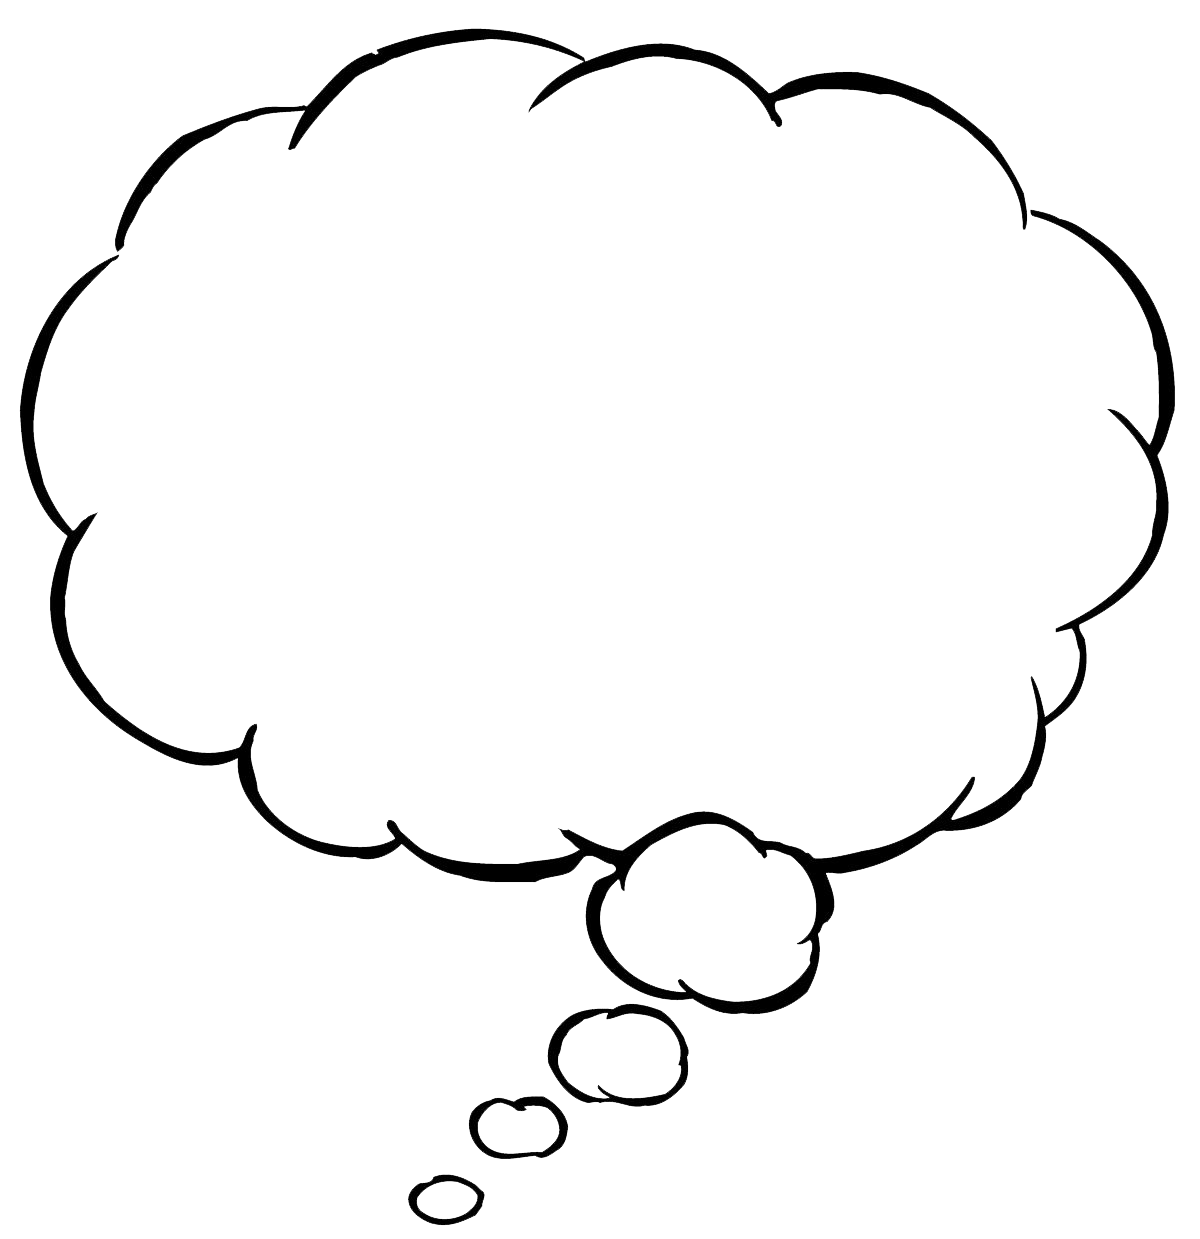 Thought bubble png transparent. Clipart balloon sketch